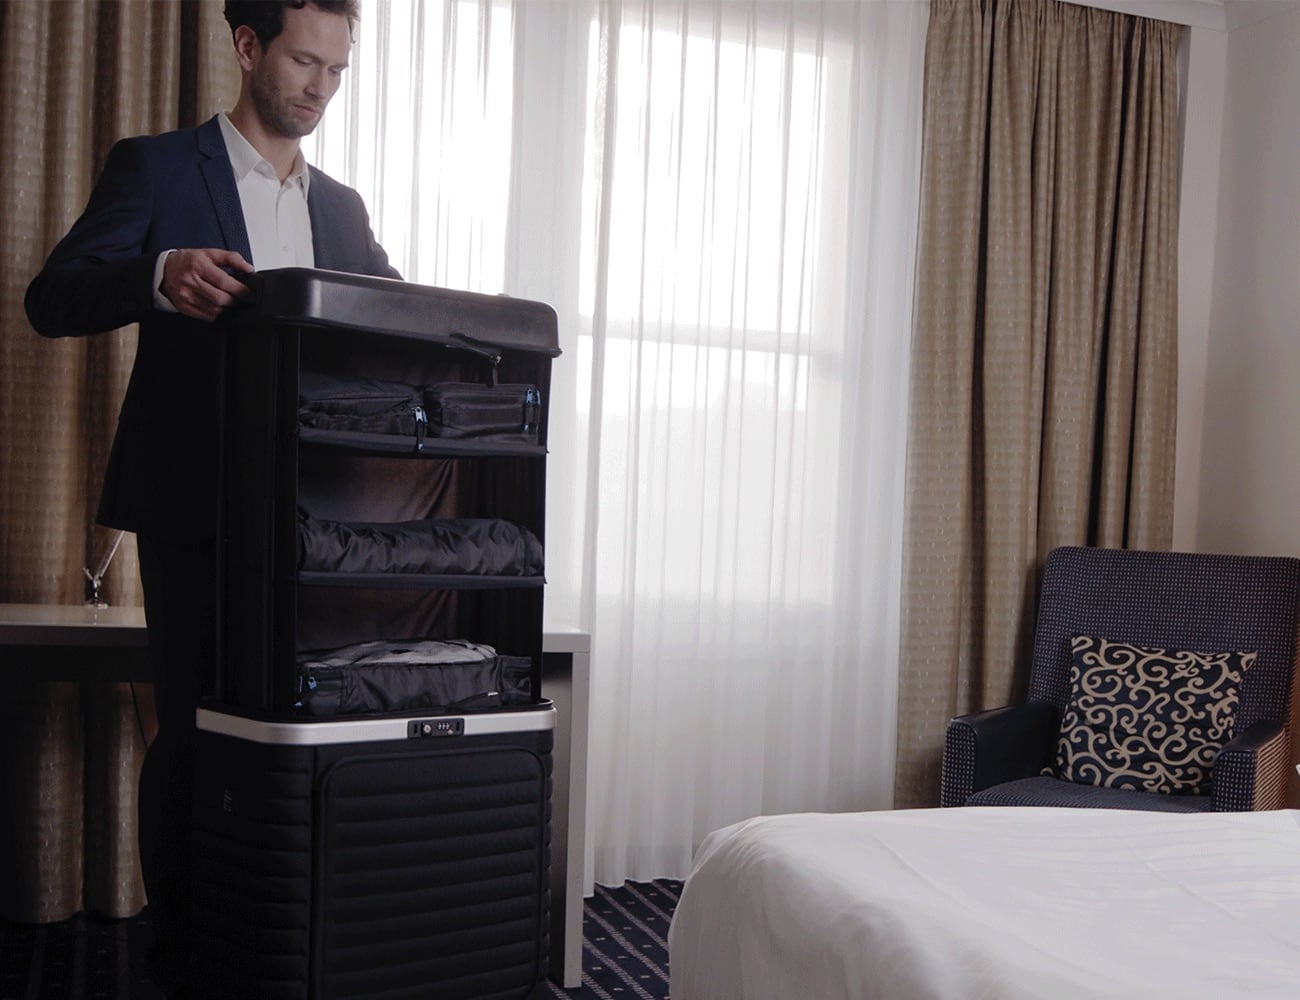 Pull Up Collapsible Suitcase is a mobile closet for traveling